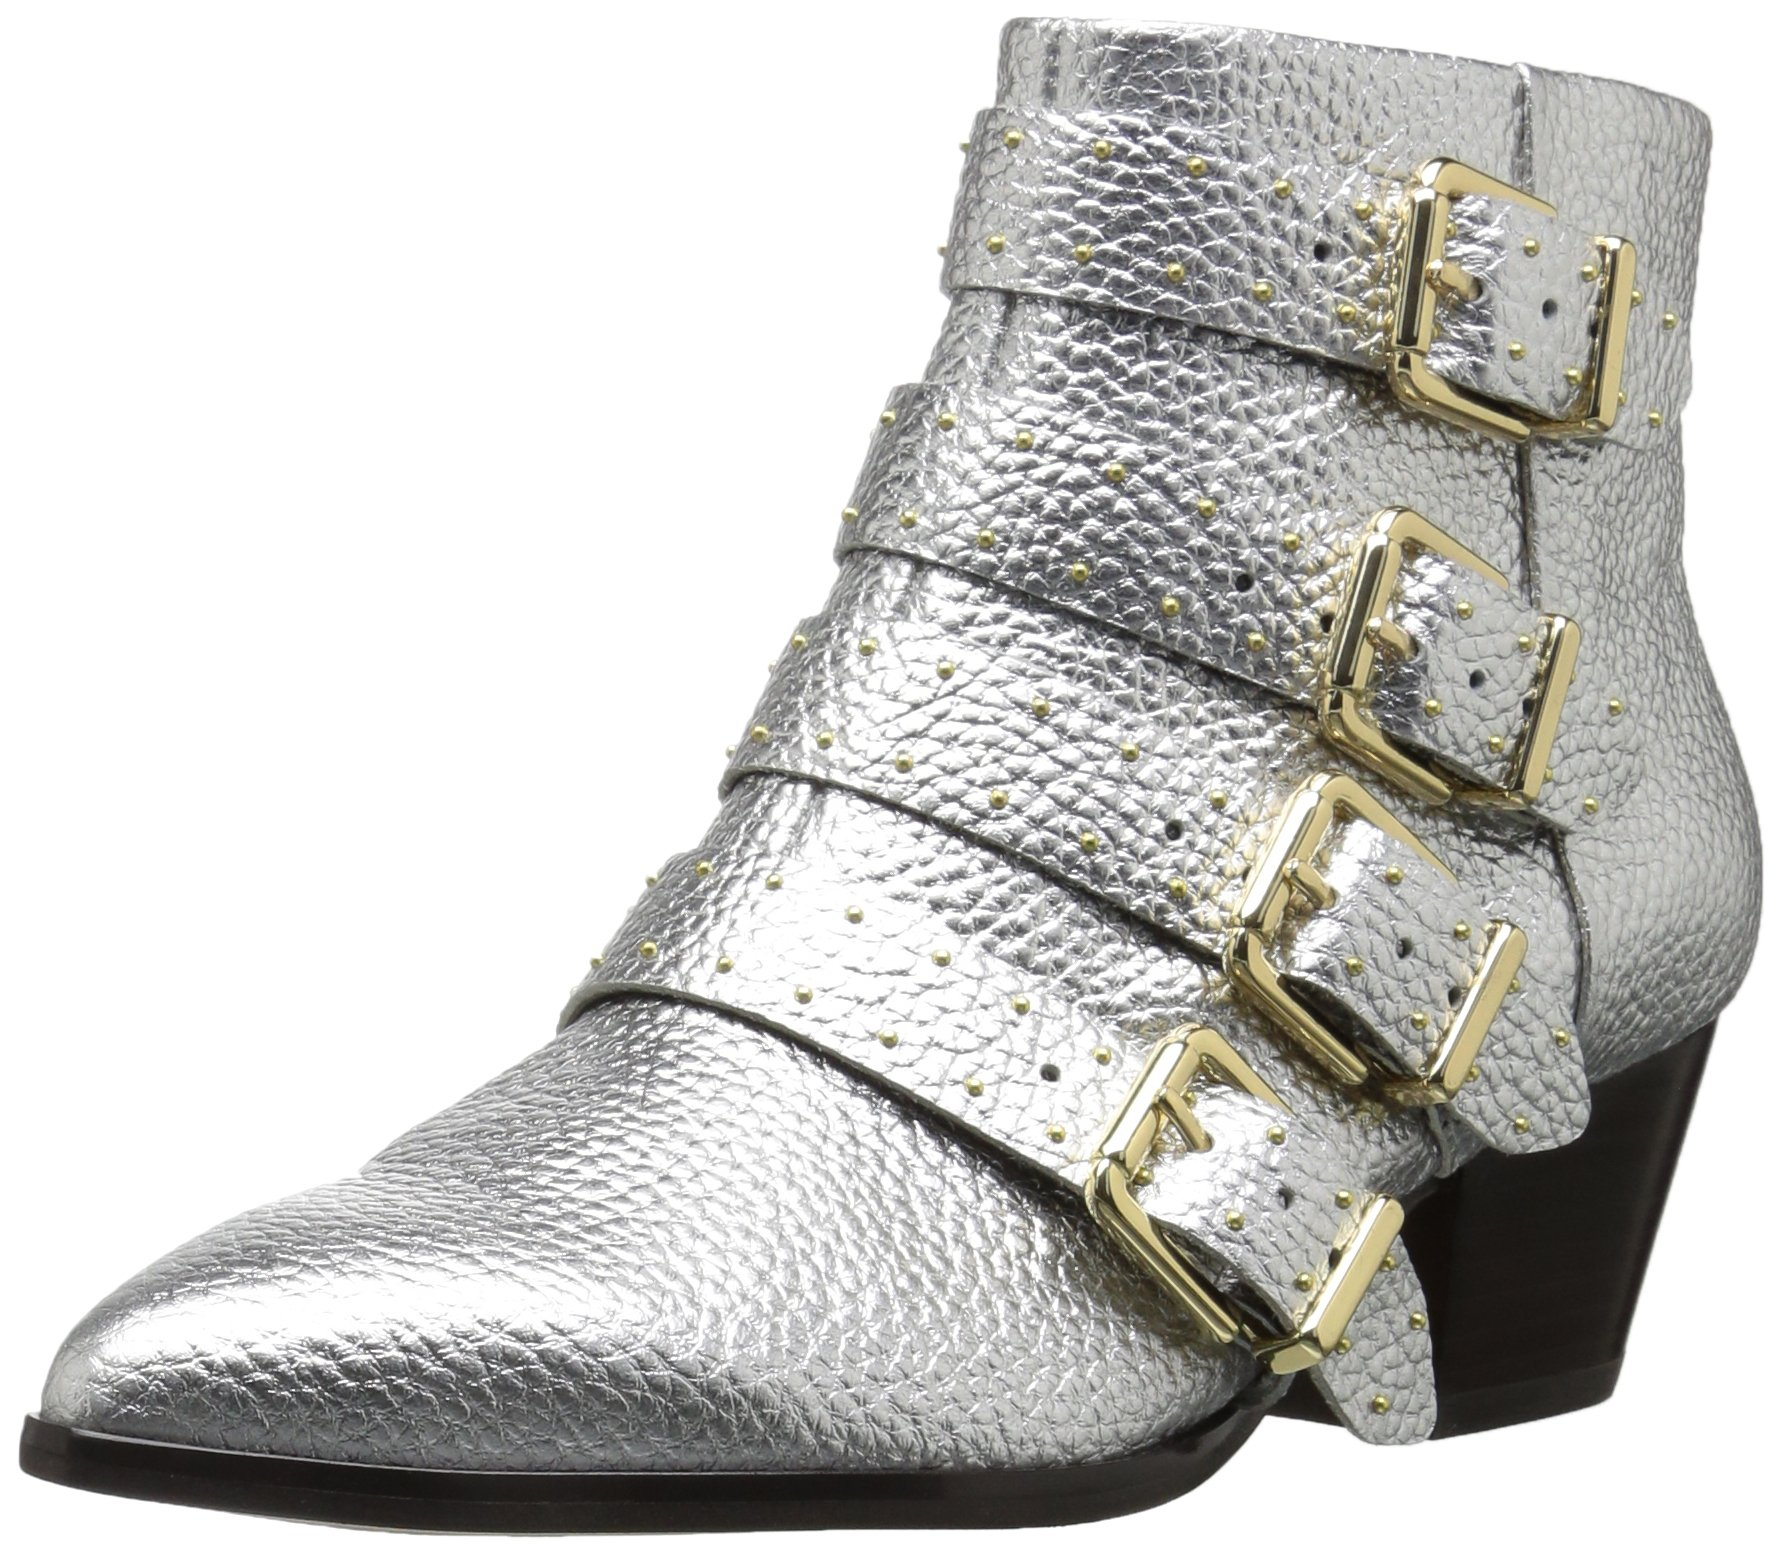 The Fix Women's Hazel 4-Buckle Strap Ankle Boot, Silver Metallic, 7 B US